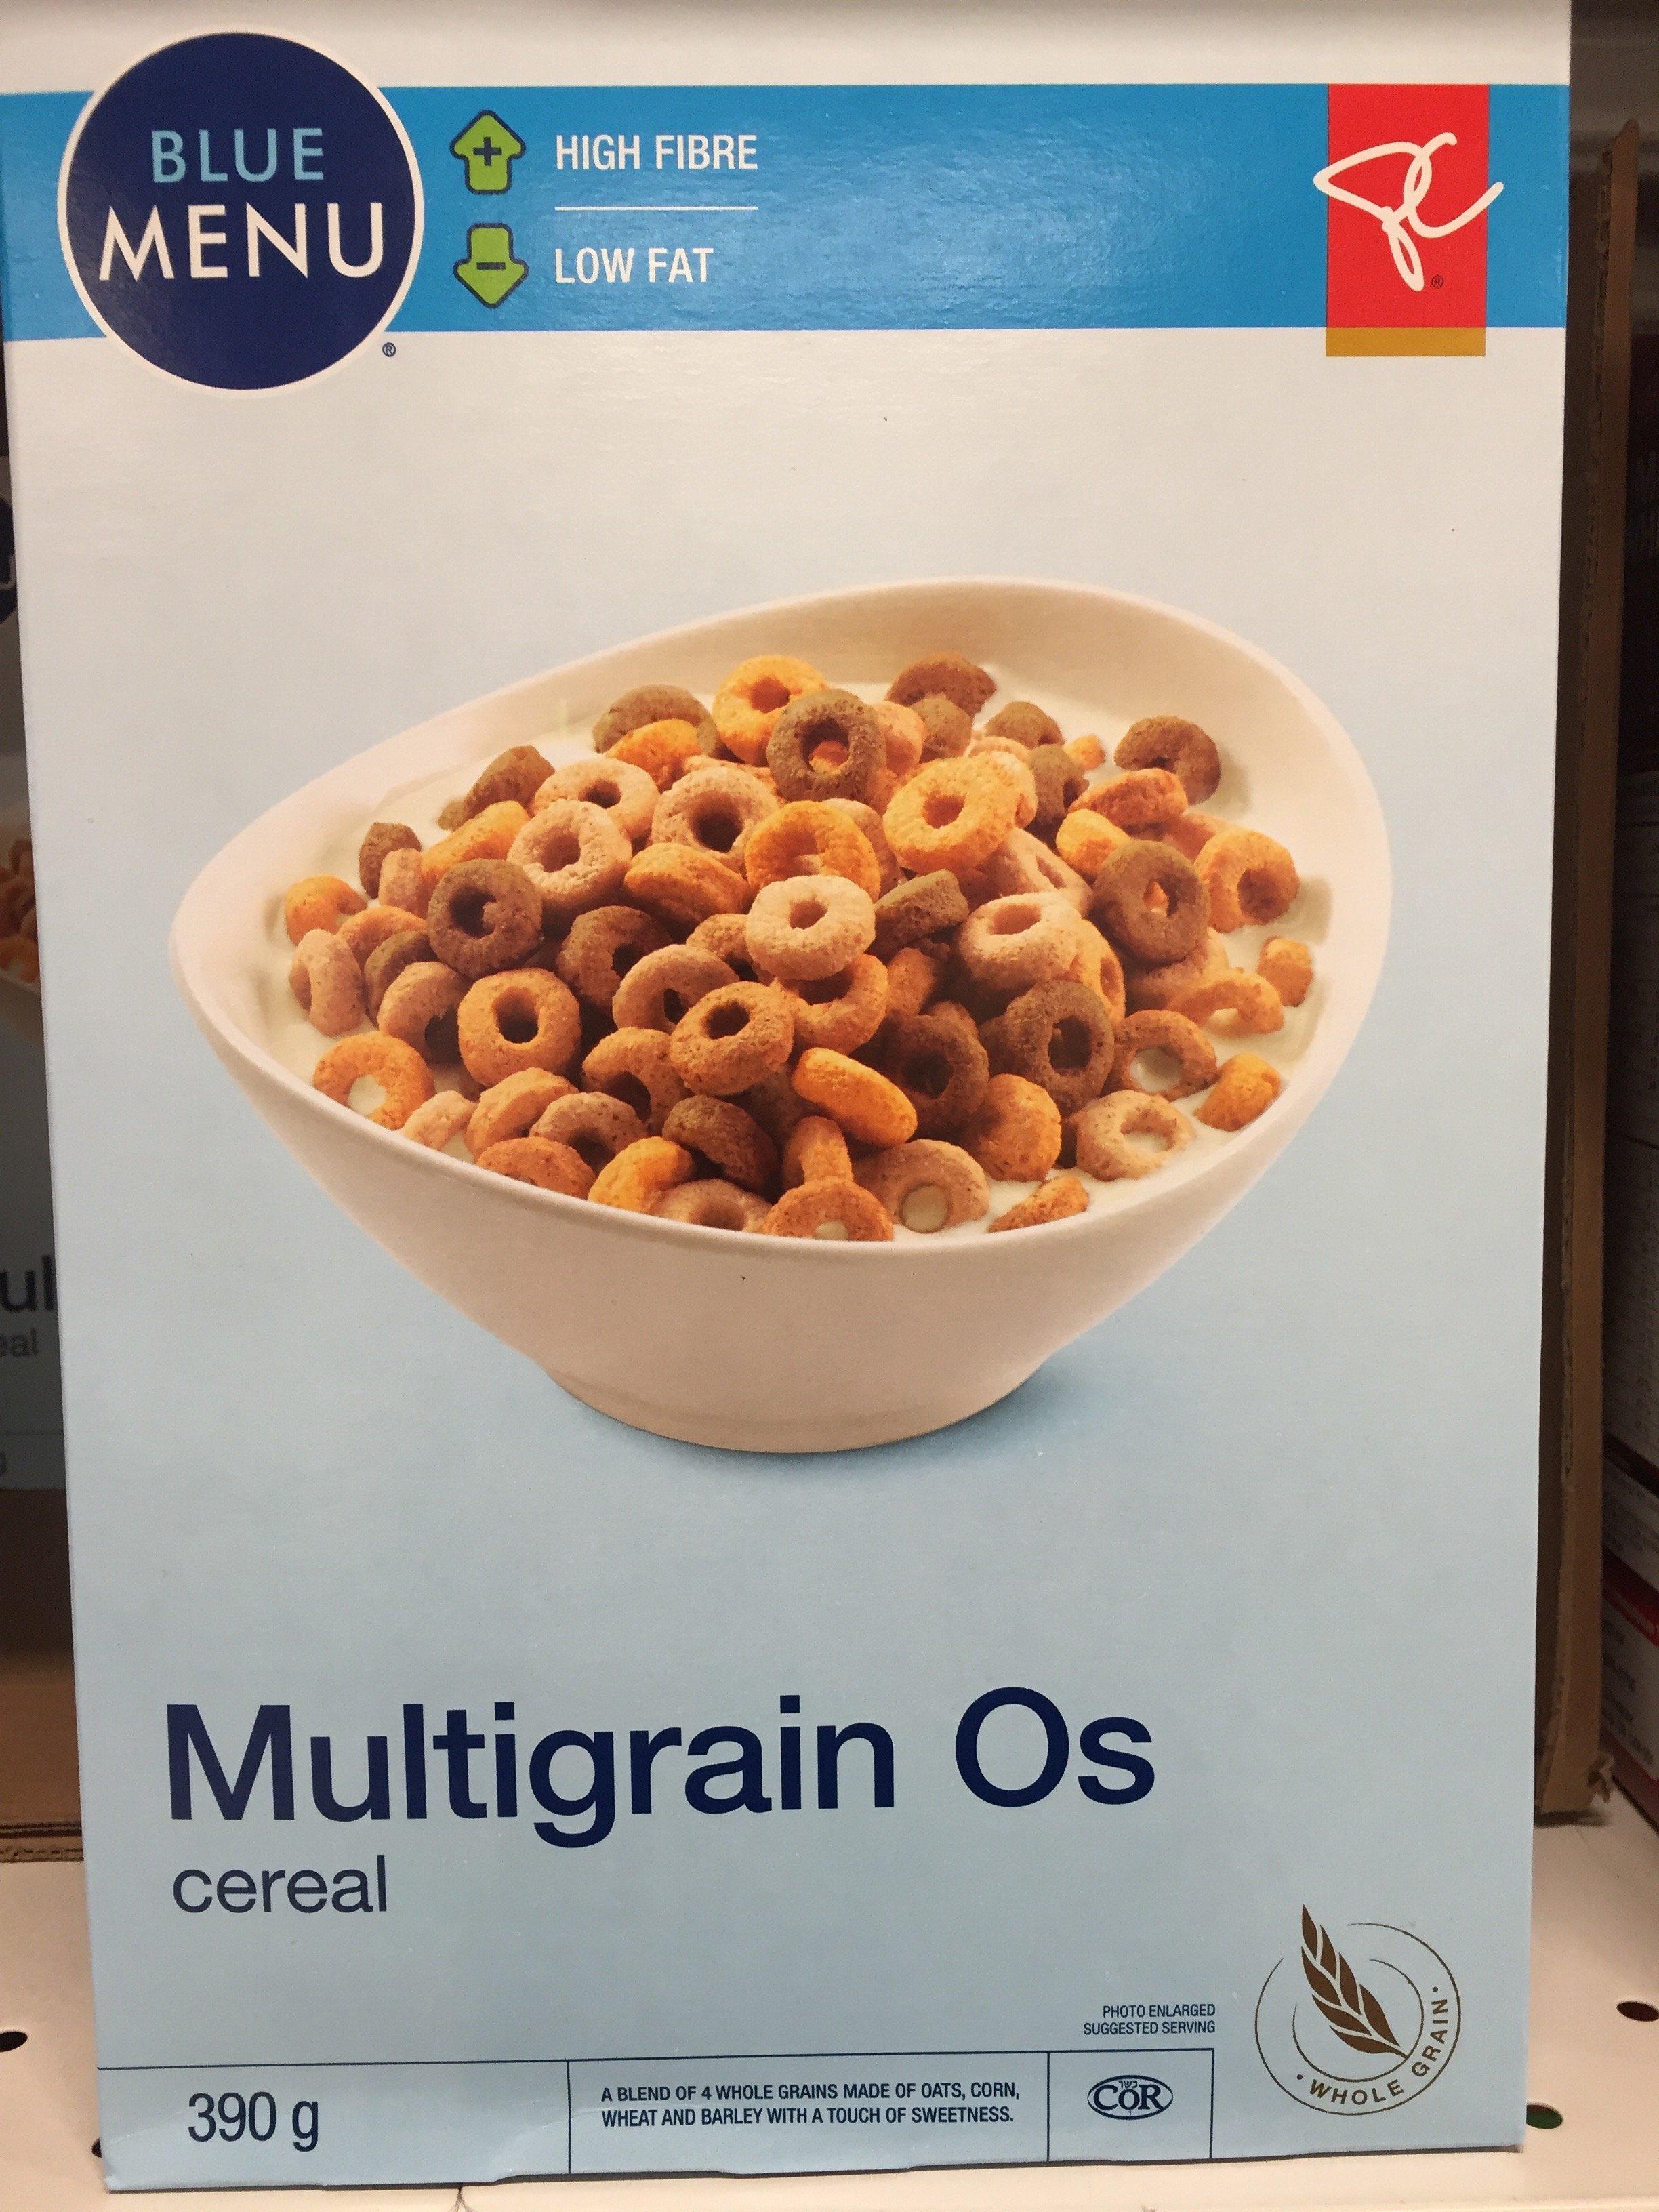 Healthy cereal: Blue Menu Multigrain O's